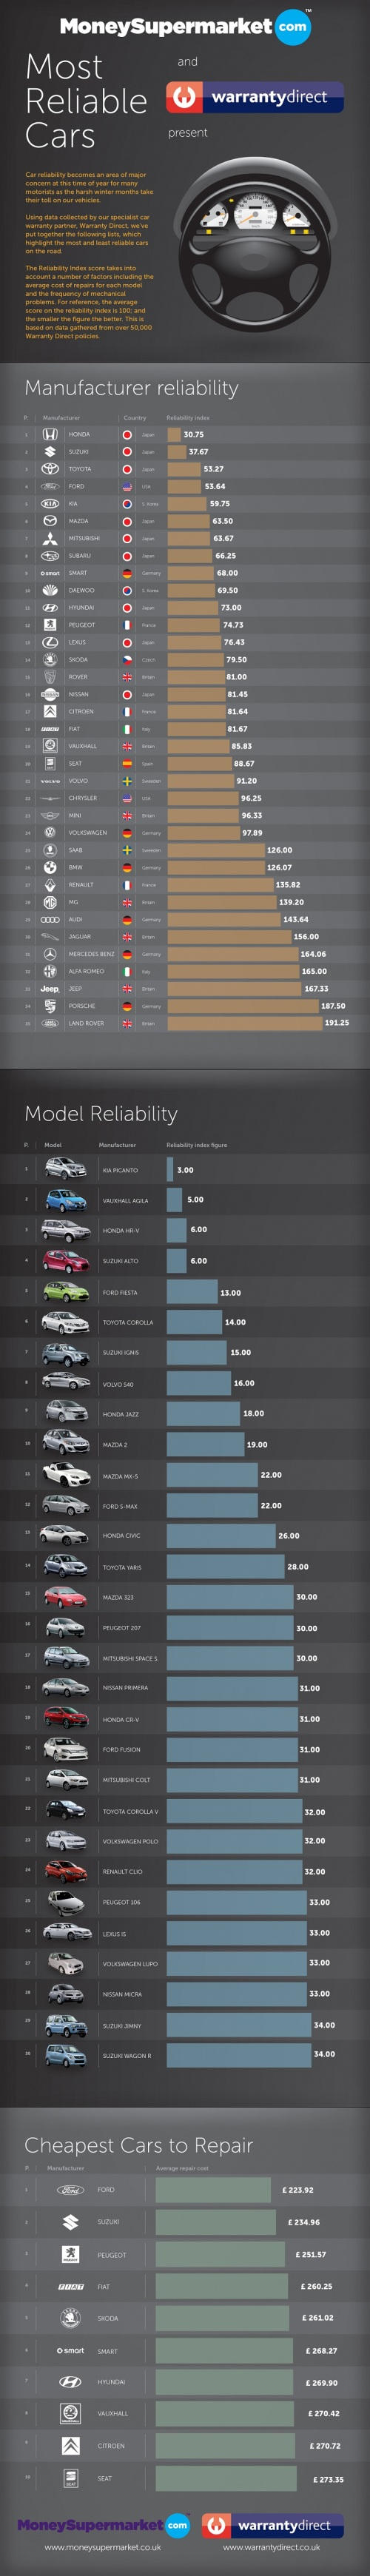 Most Reliable Cars infographic